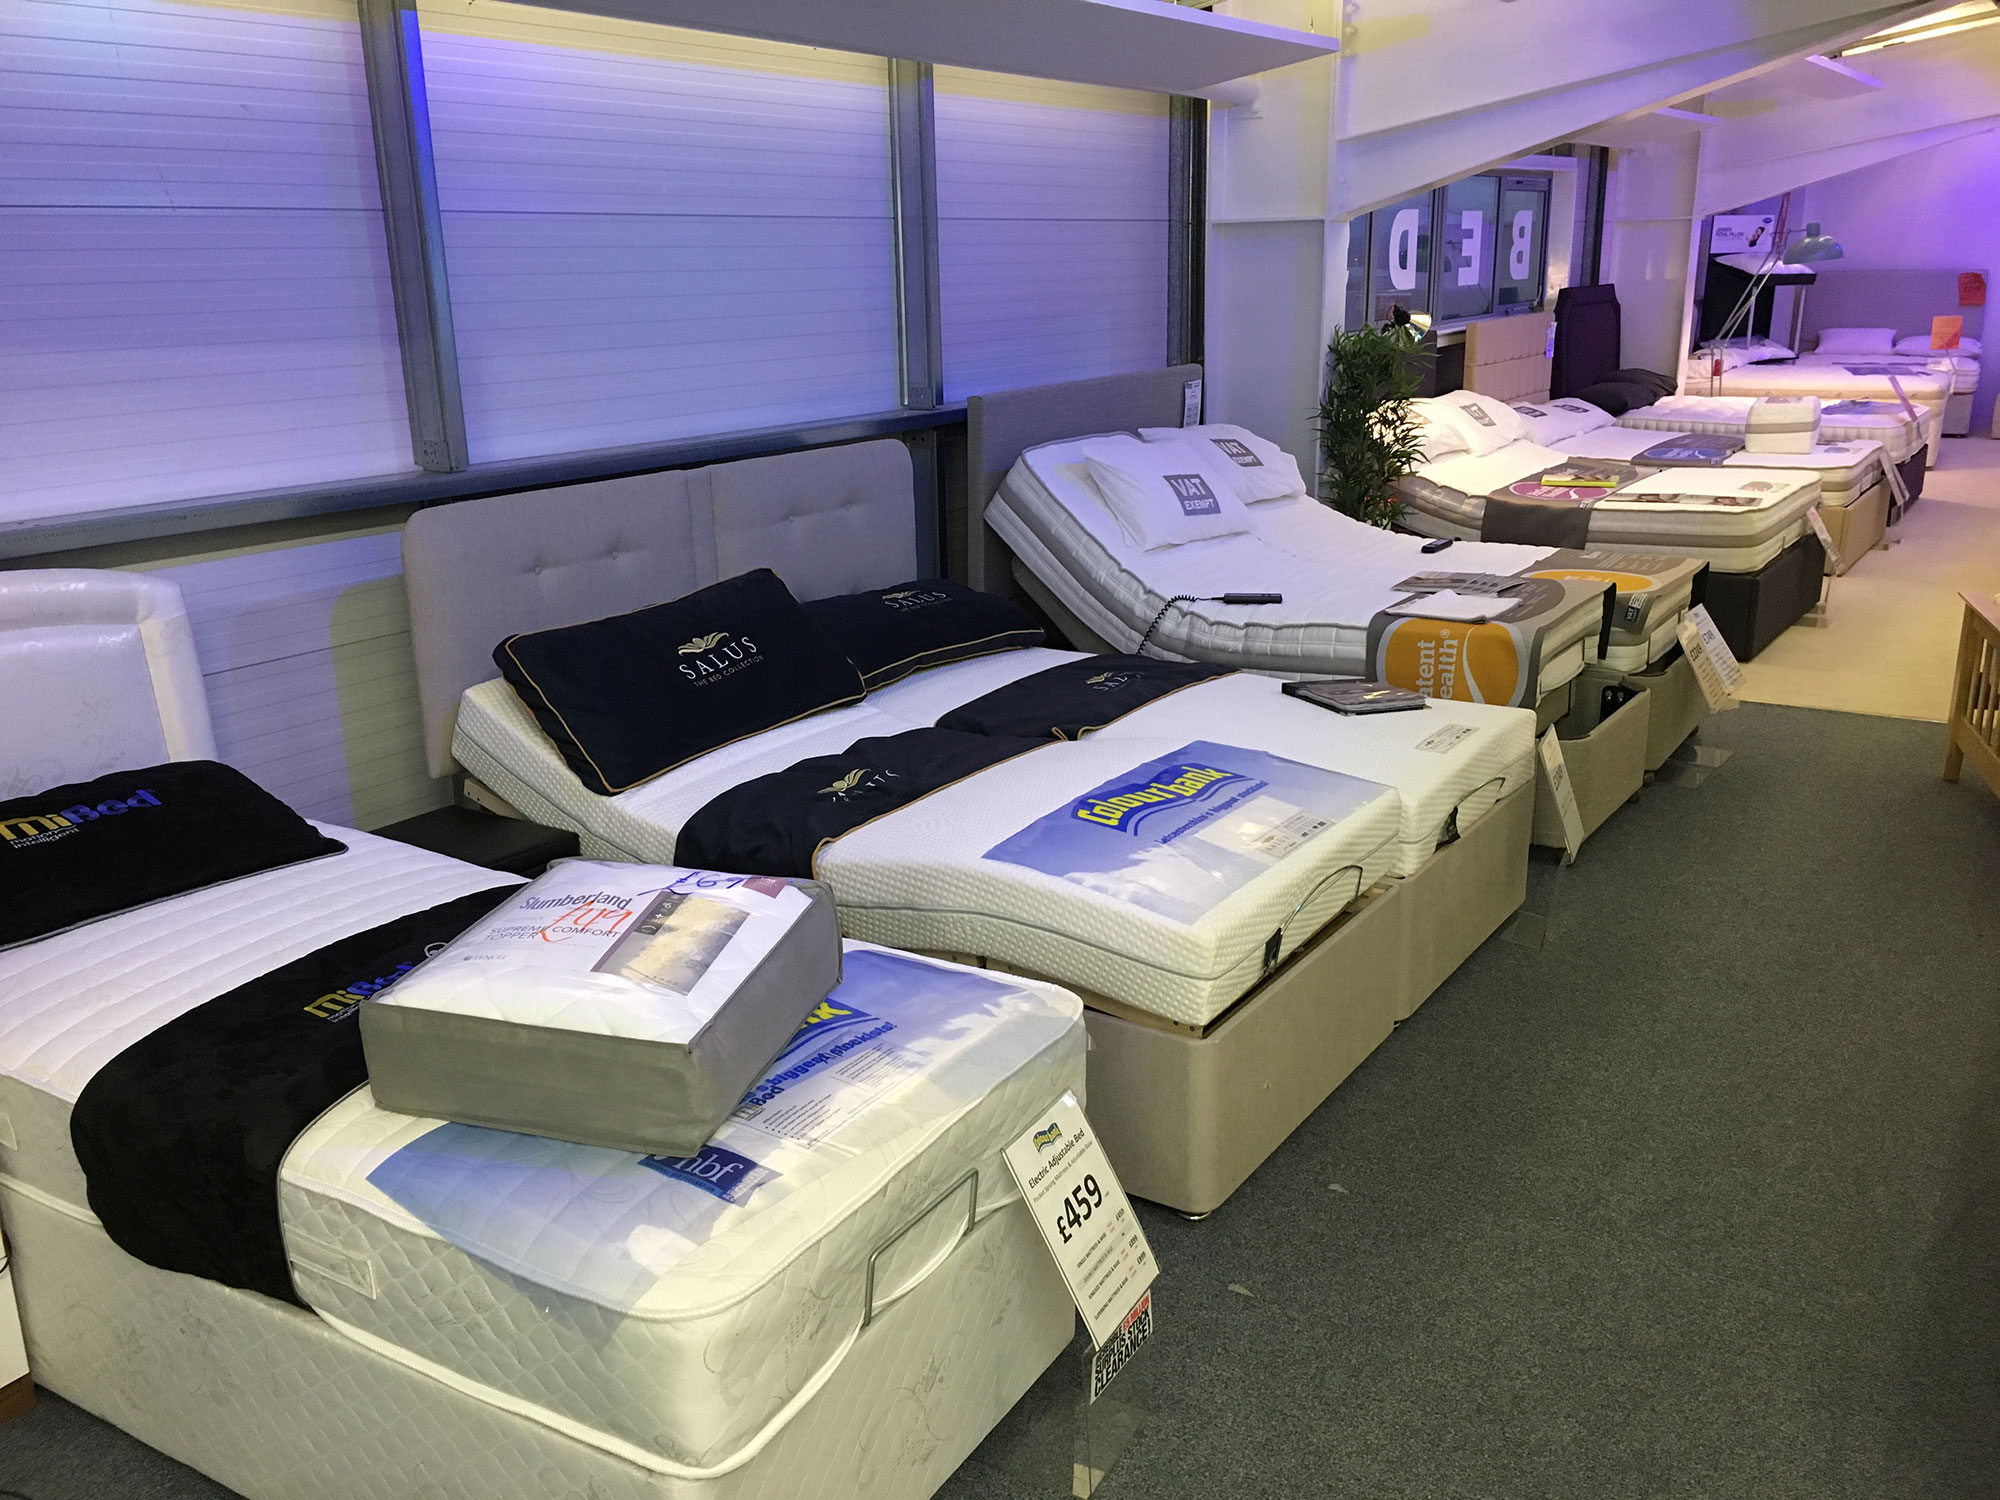 Beds Mattresses Shop In Leicester Top Selling Colourbank